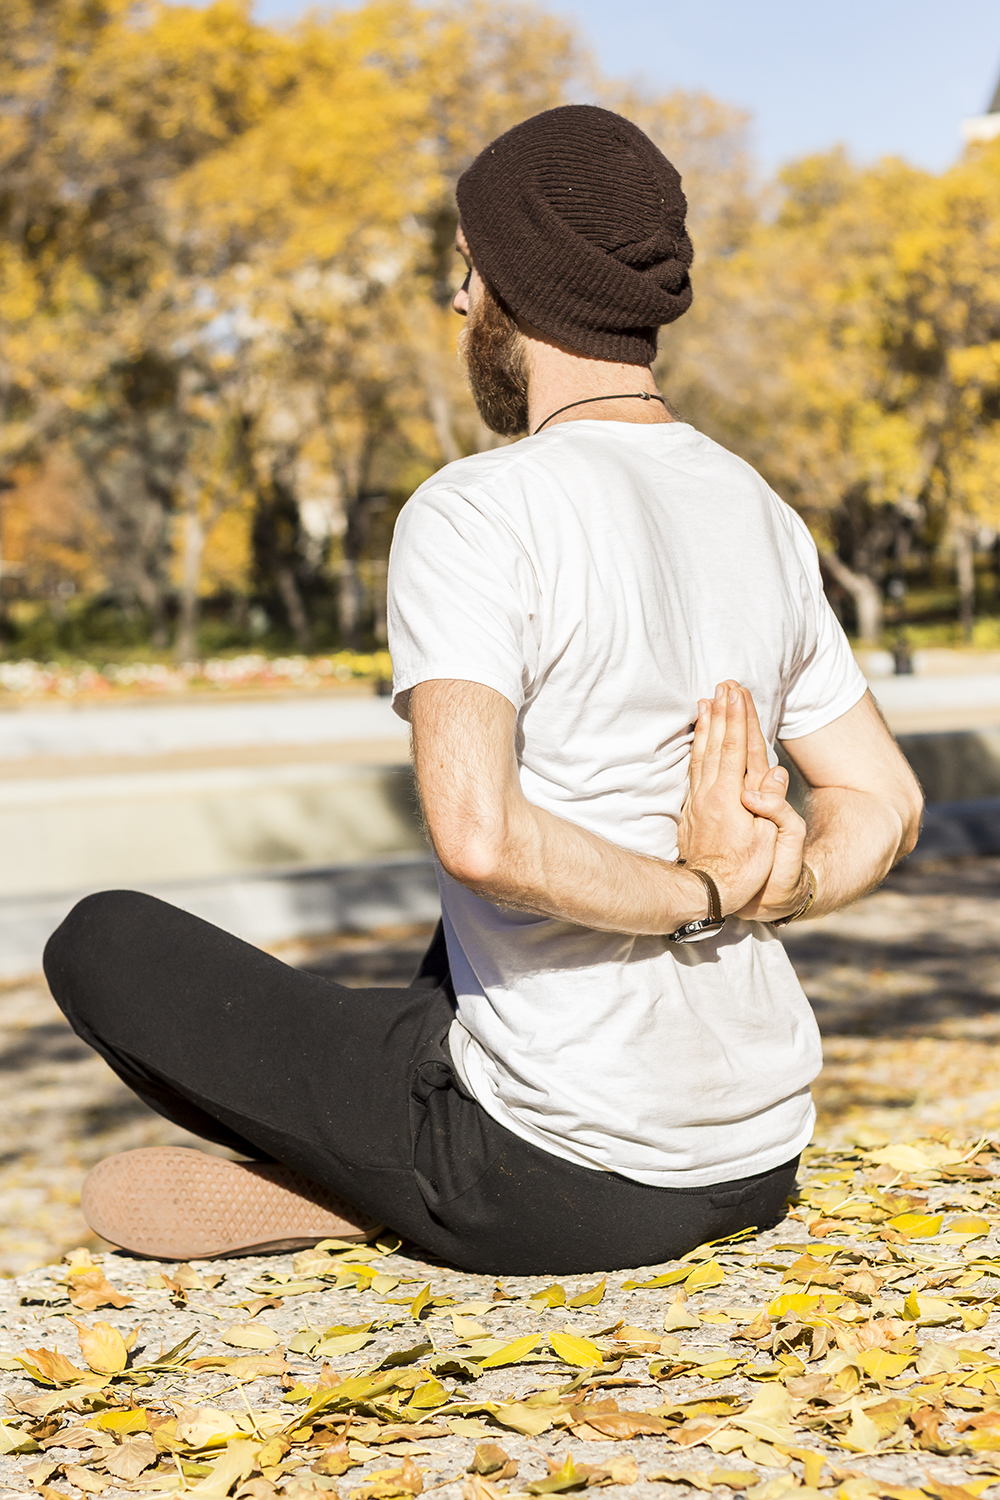 Man doing reverse prayer mudra yoga pose to soften shoulders and chest.